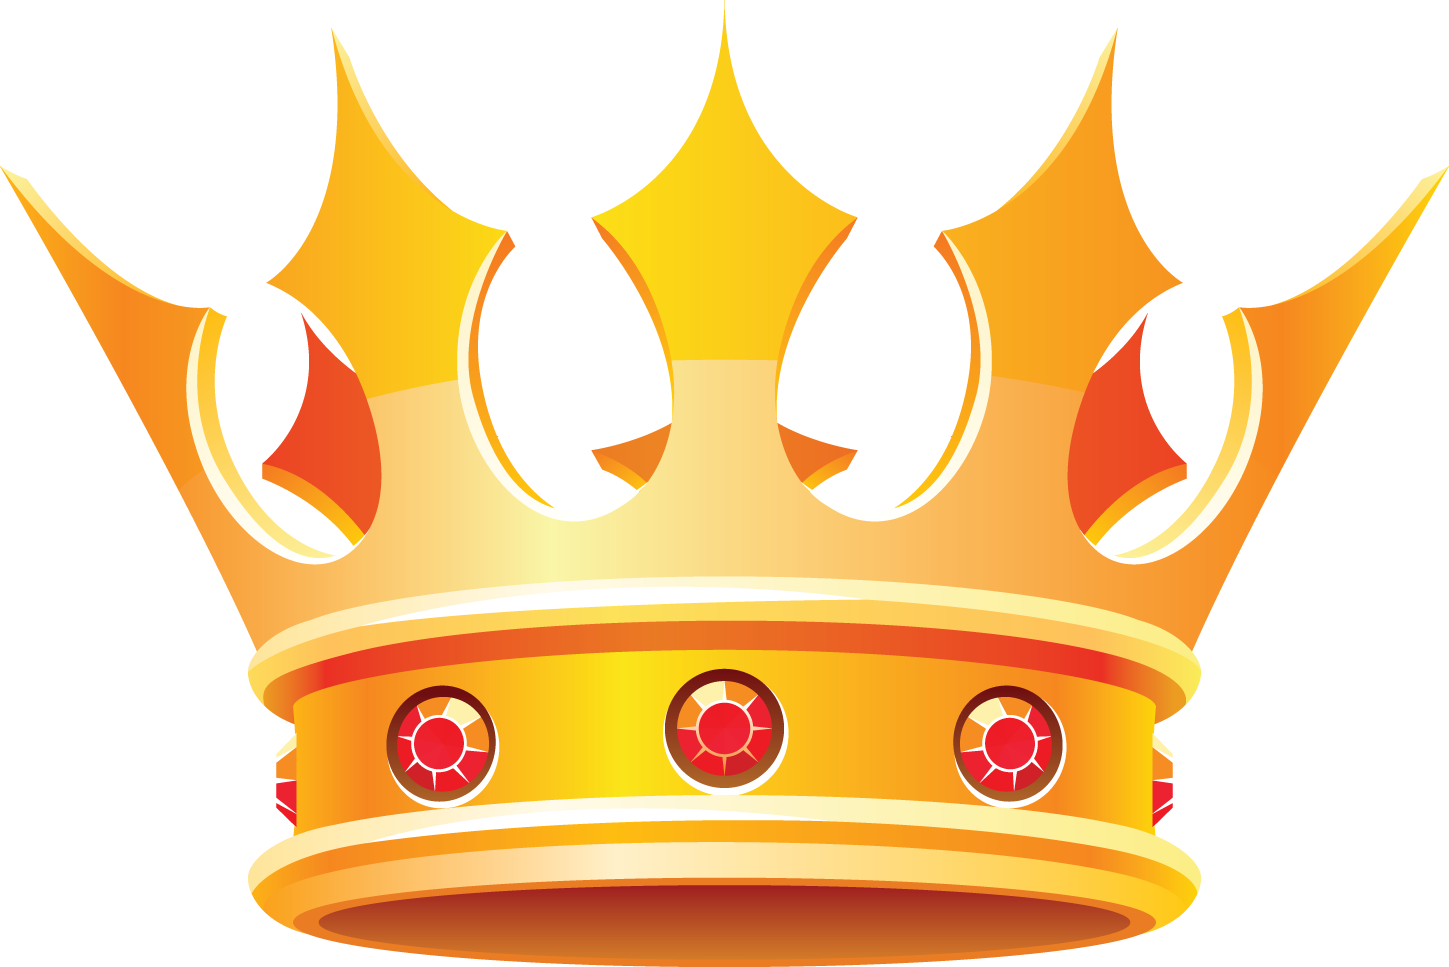 Crown images clipart png free library Queen Crown Clipart at GetDrawings.com | Free for personal use Queen ... png free library